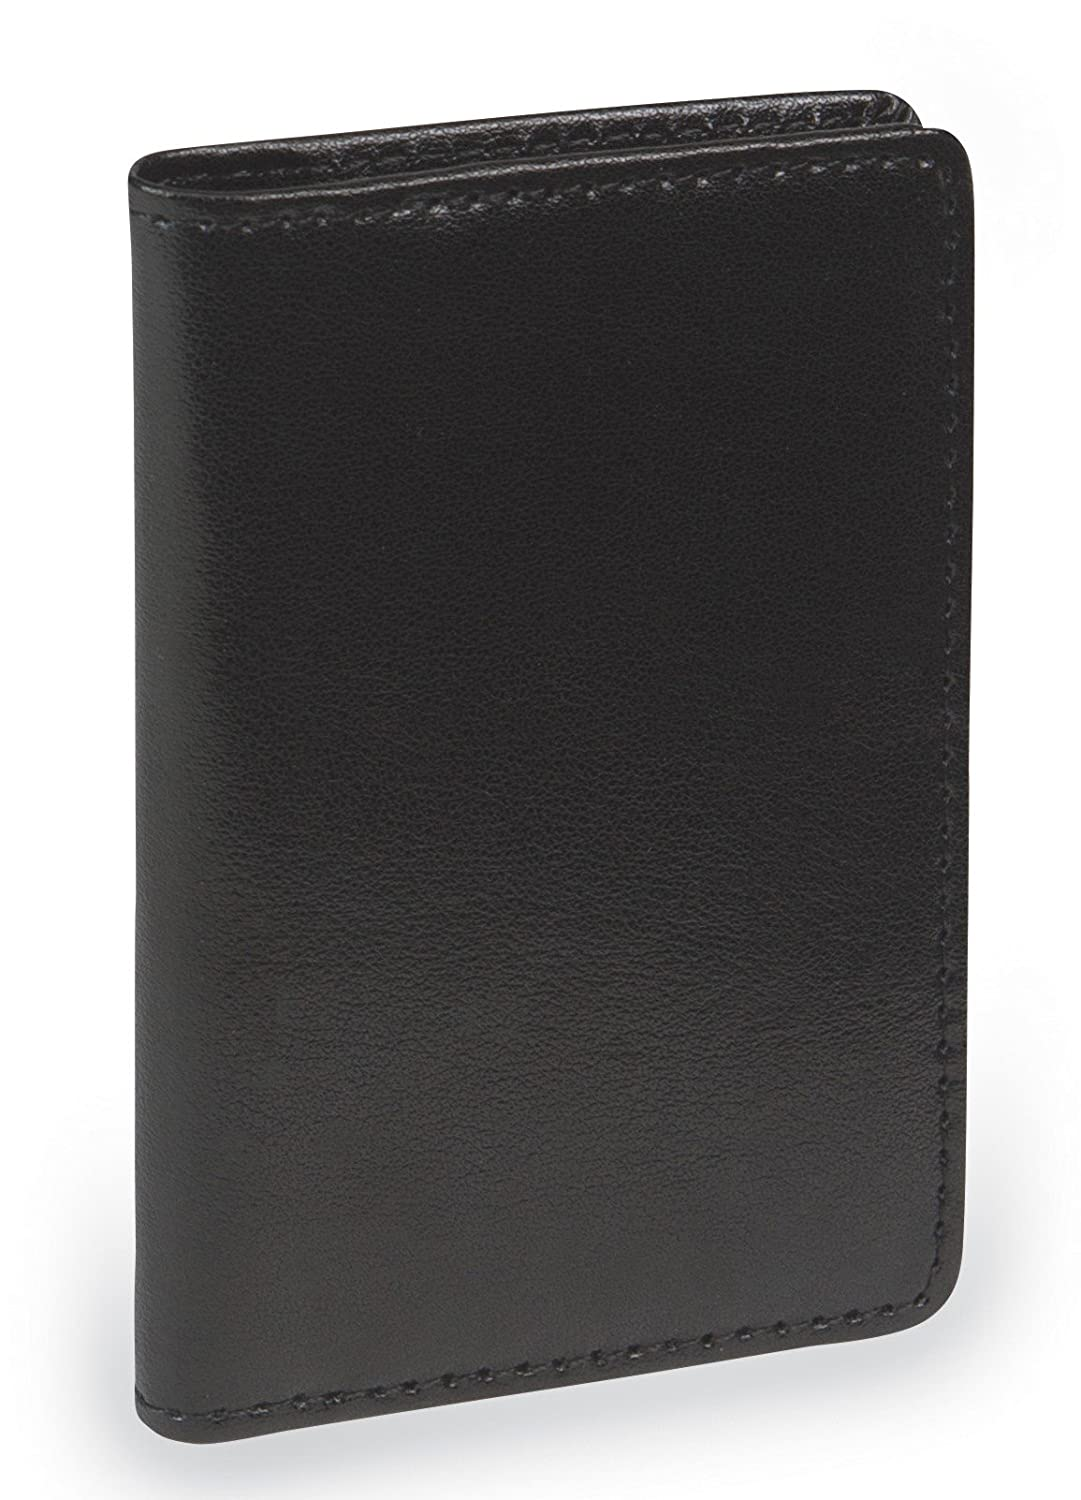 Samsill 81220 Regal Leather Business Card Wallet, Holds 25 Cards of 4.0 L by 2.0 W-Inch, Black Samsill Corporation